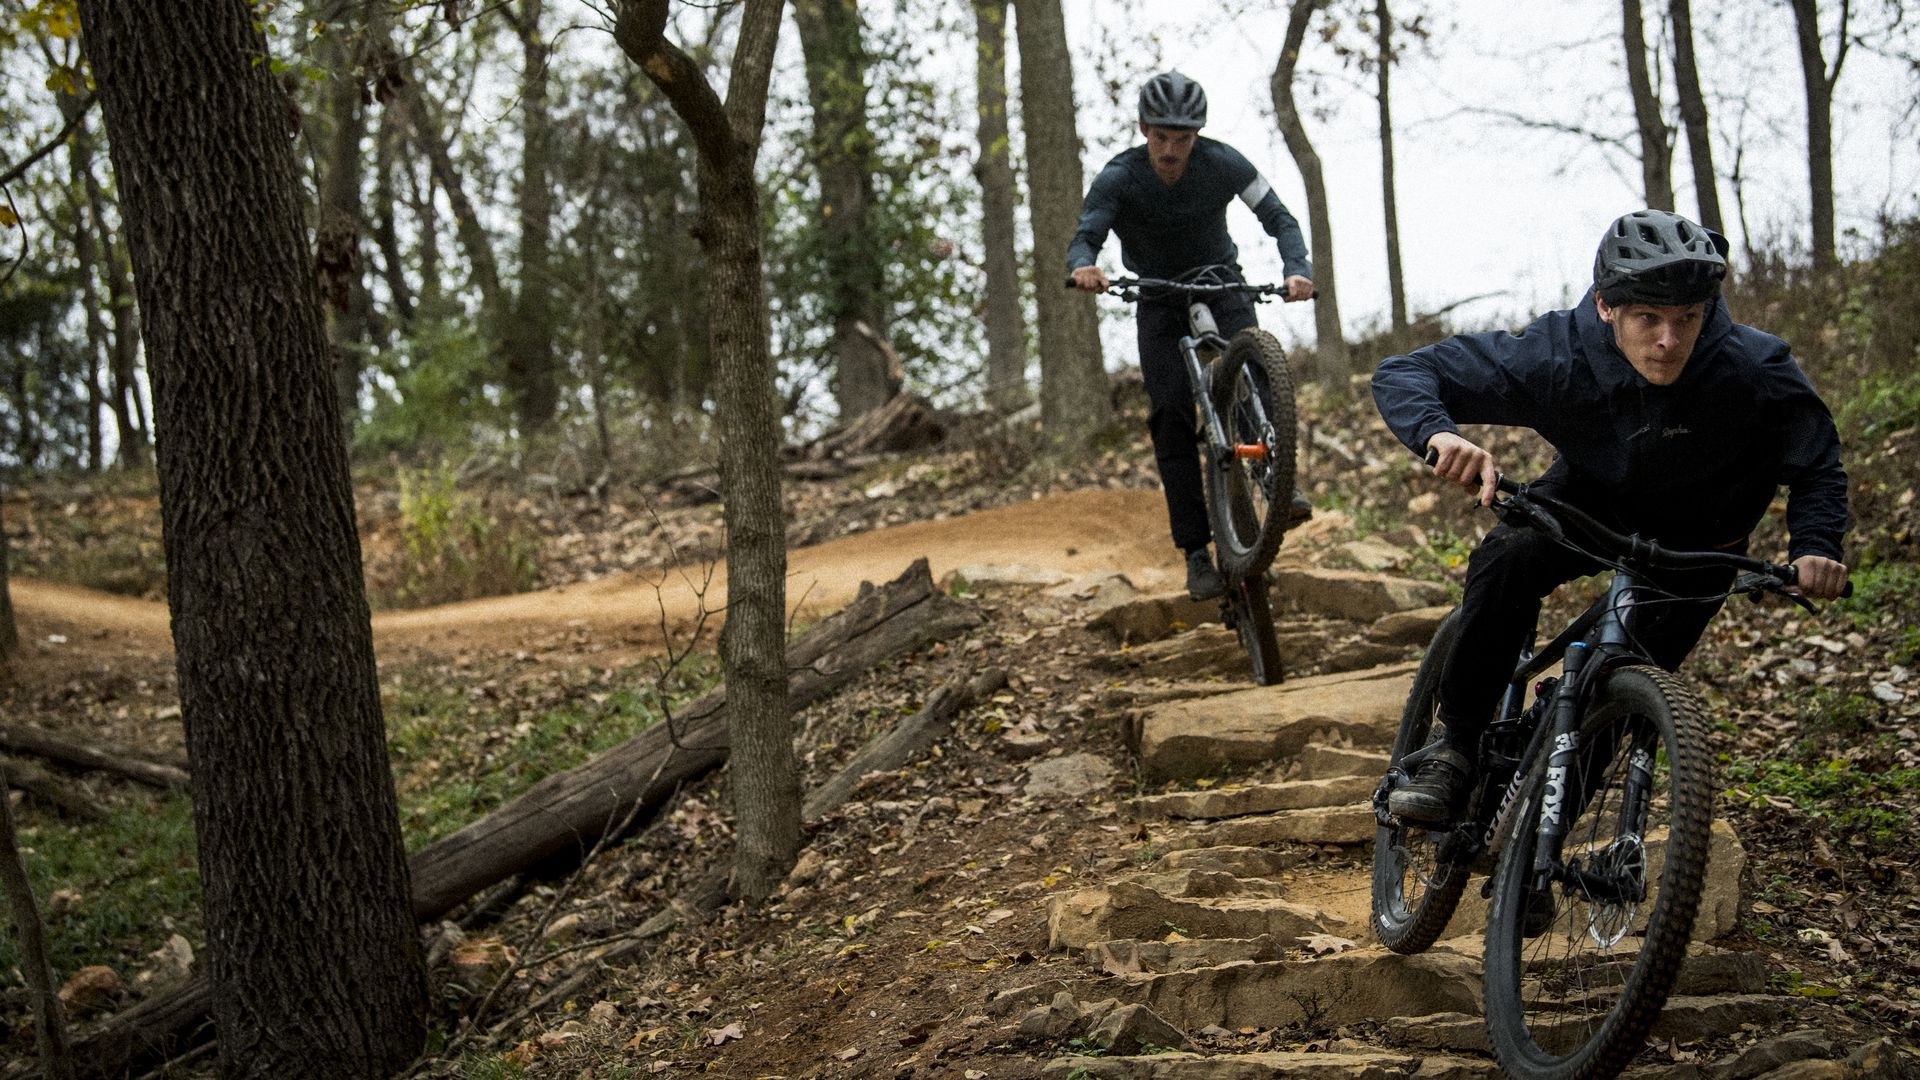 Two cyclists ride bikes on a dirt path